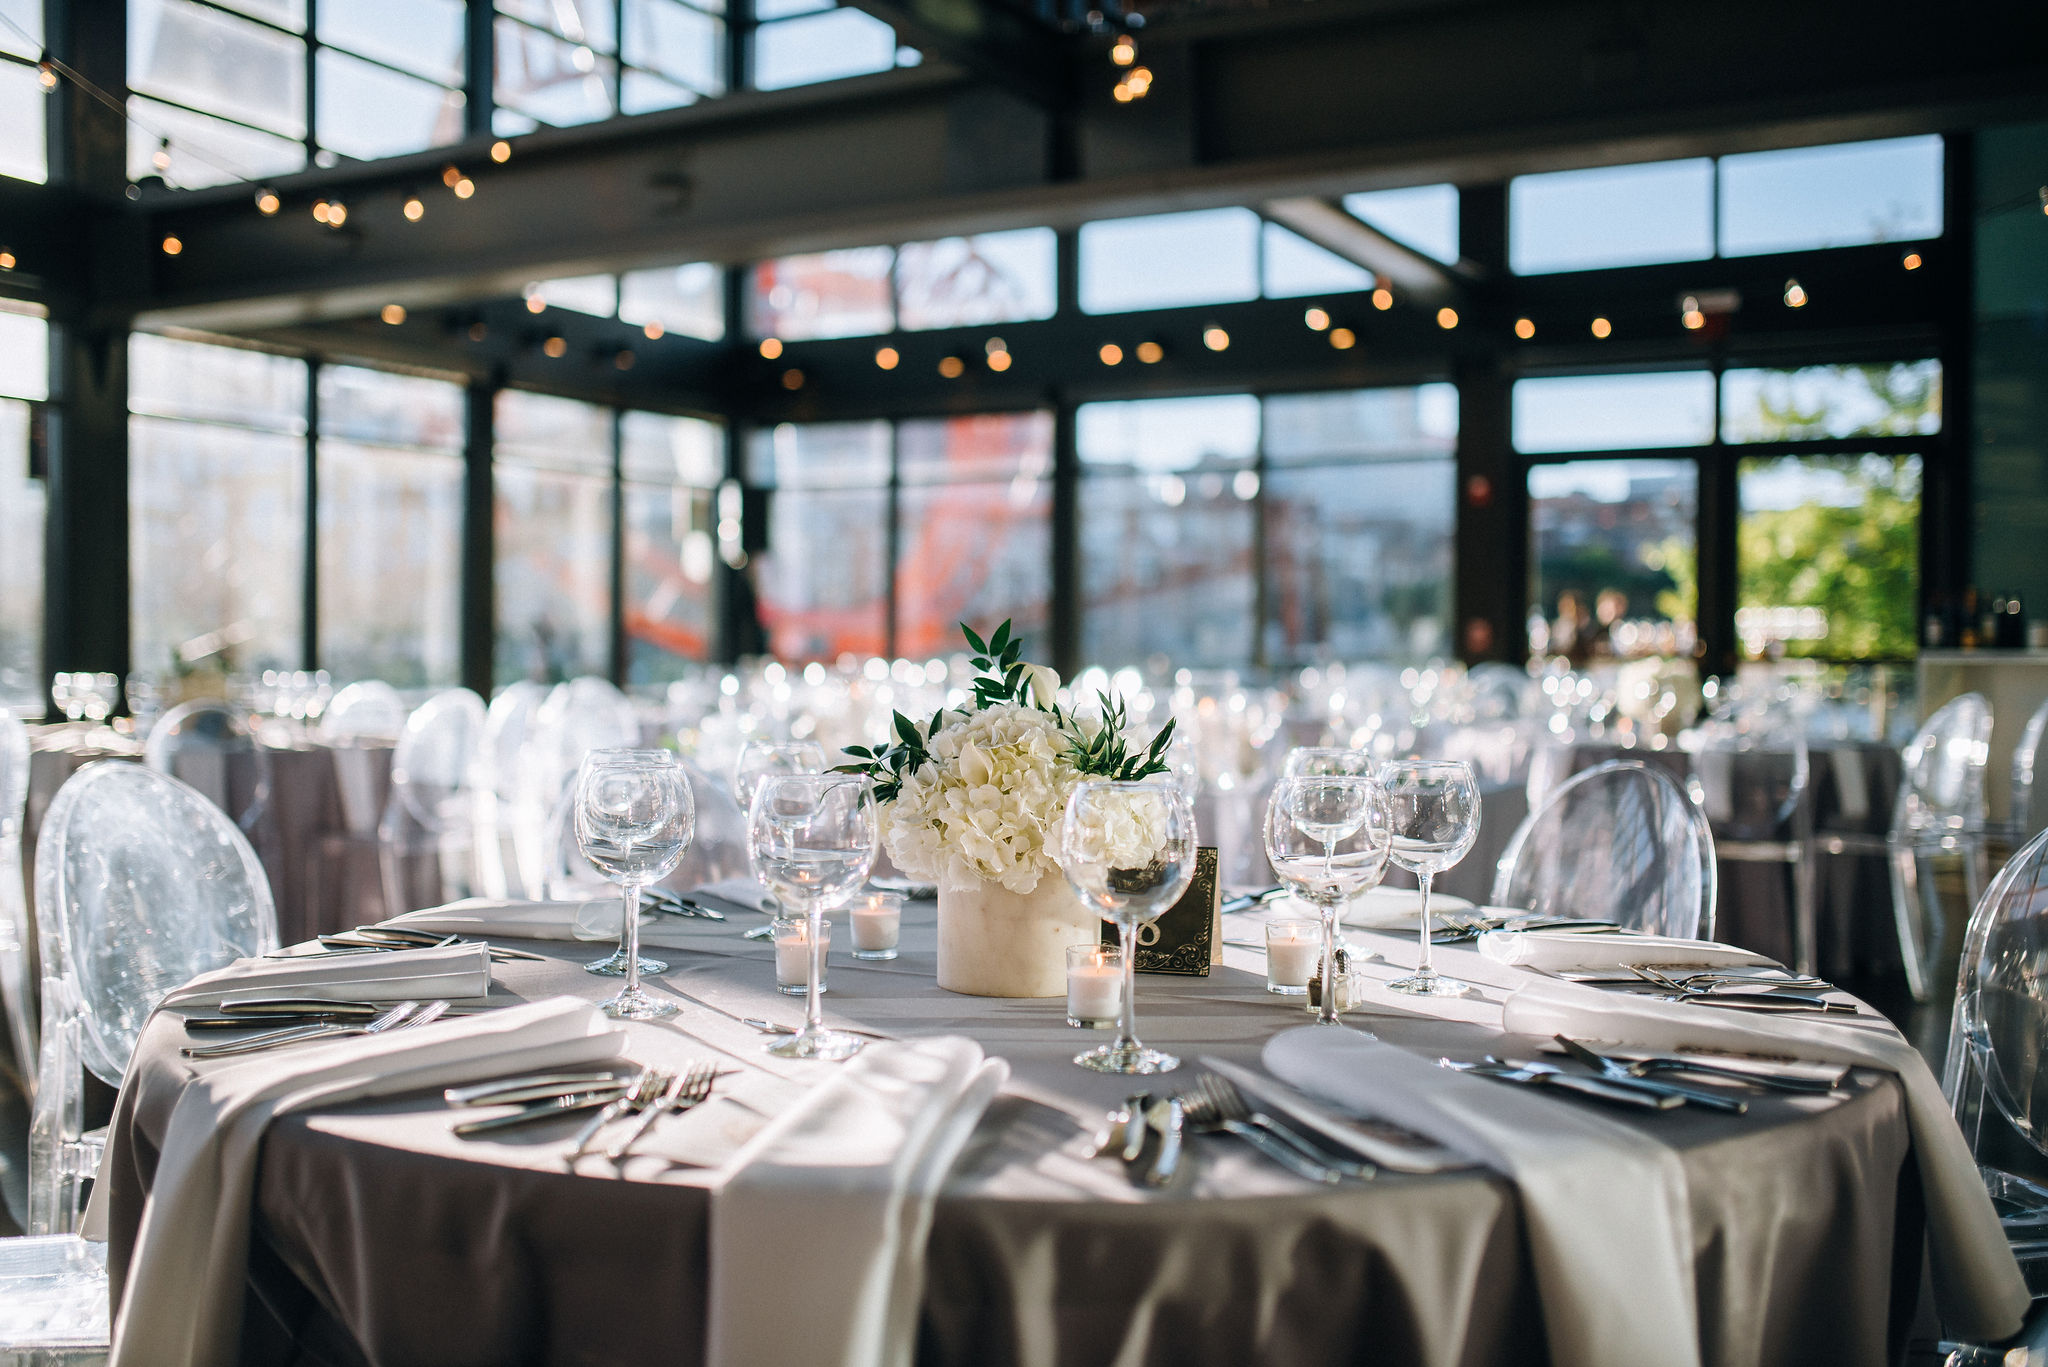 A Modern, Elegant Awards Banquet | Infinity Hospitality's Blog